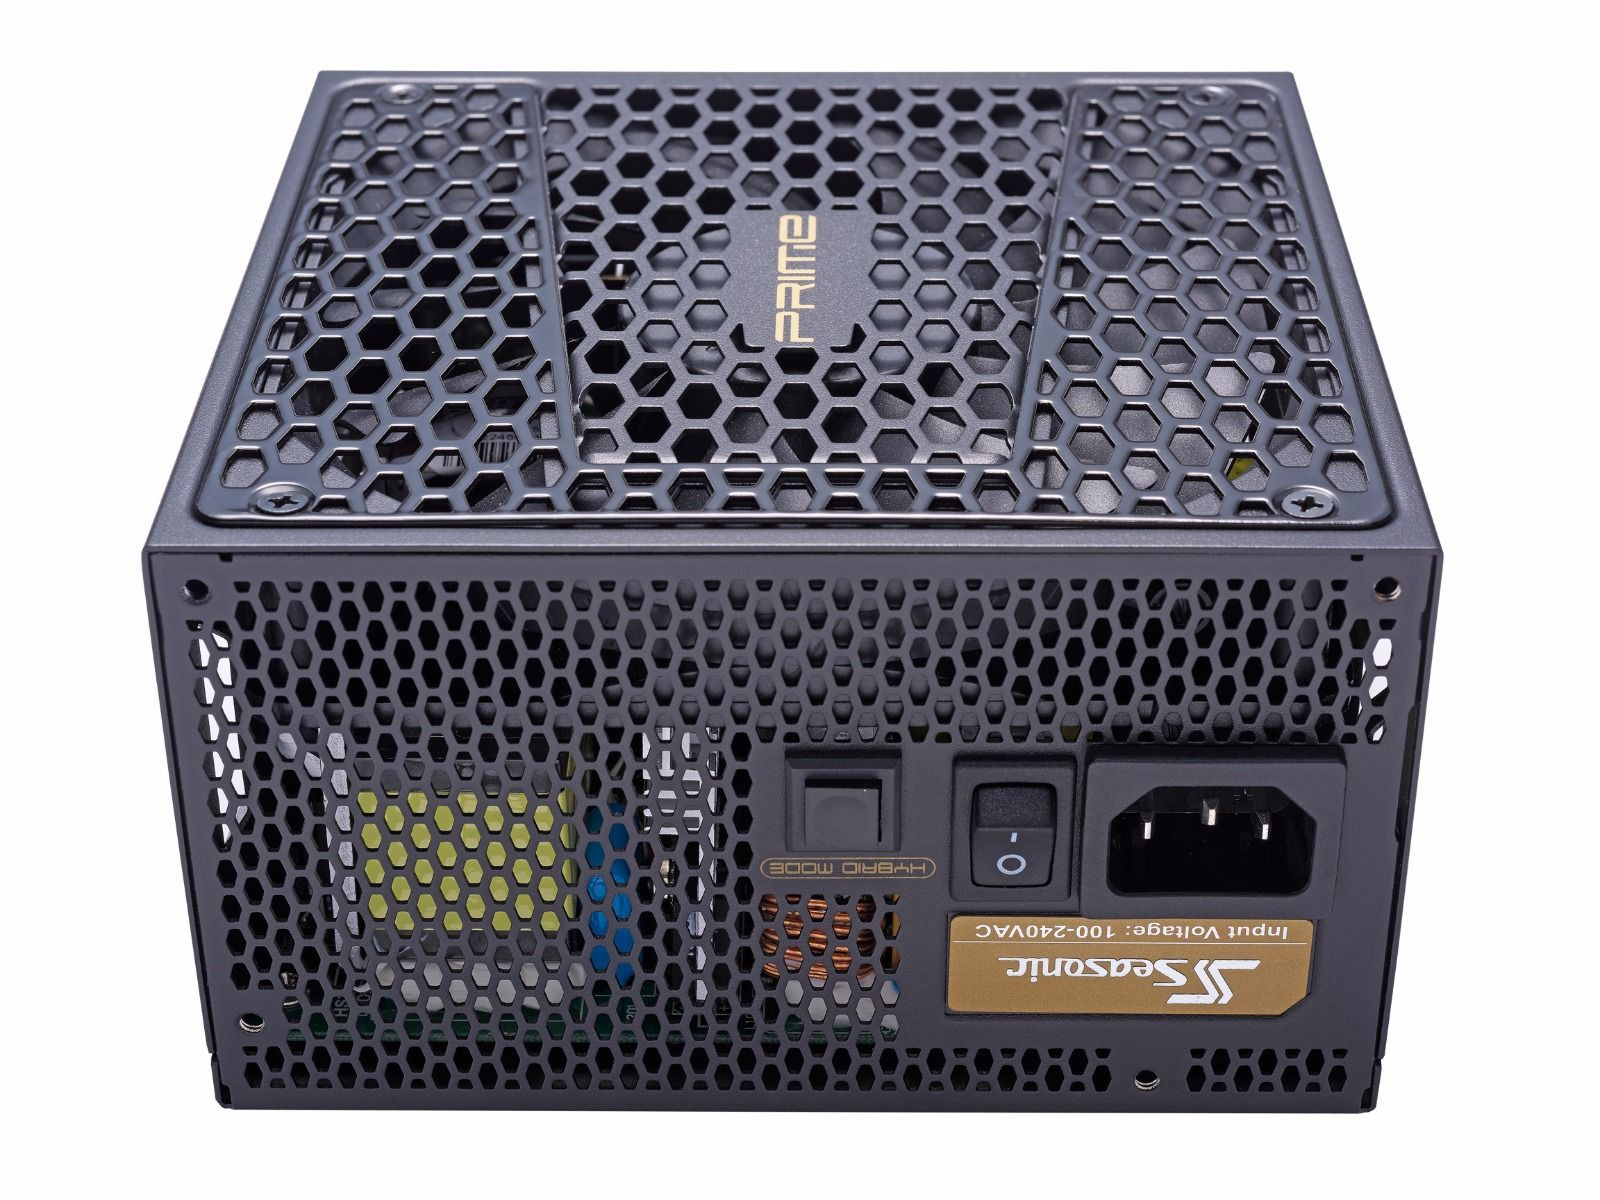 Блок питания 550W Seasonic Prime Ultra Gold (SSR-550GD2) (135мм, 24+8pin, 2x6/8pin, 6хSATA, 3xMolex, 80 PLUS Gold)